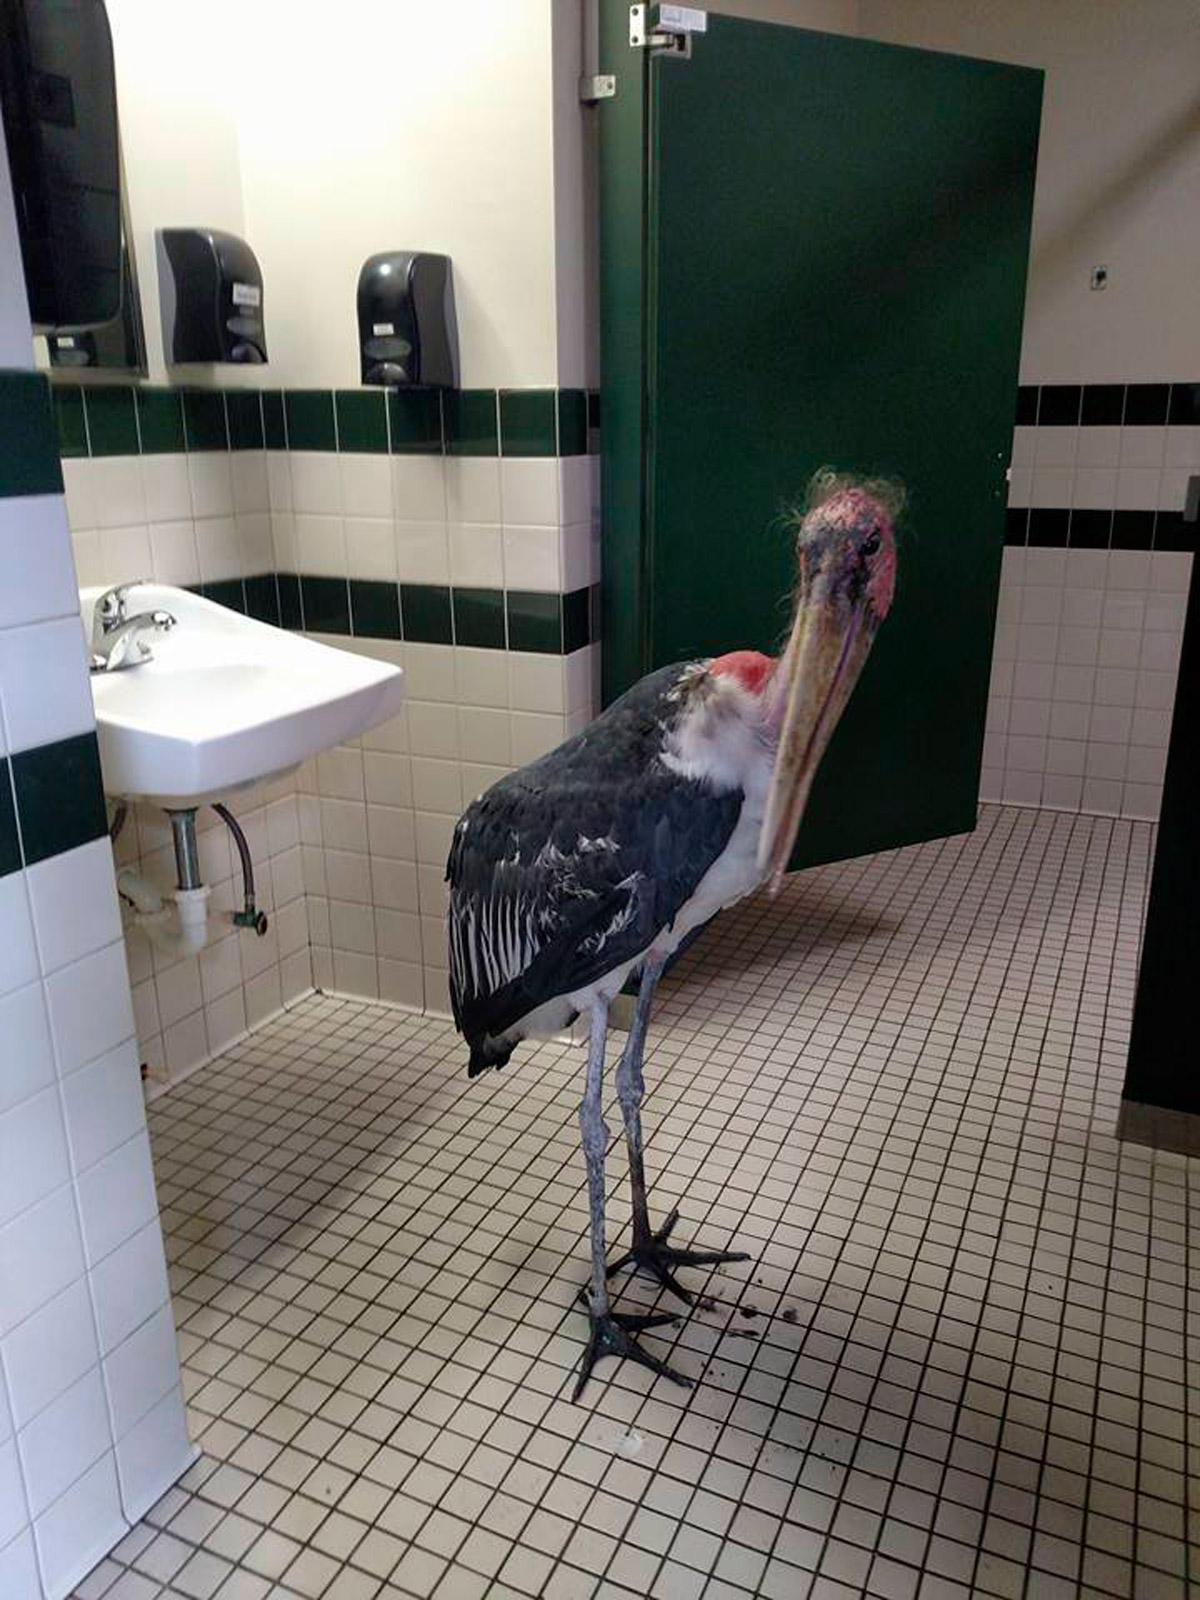 A marabou stork in a restroom at the St. Augustine Alligator Farm and Zoological Park on Oct. 6, 2016.